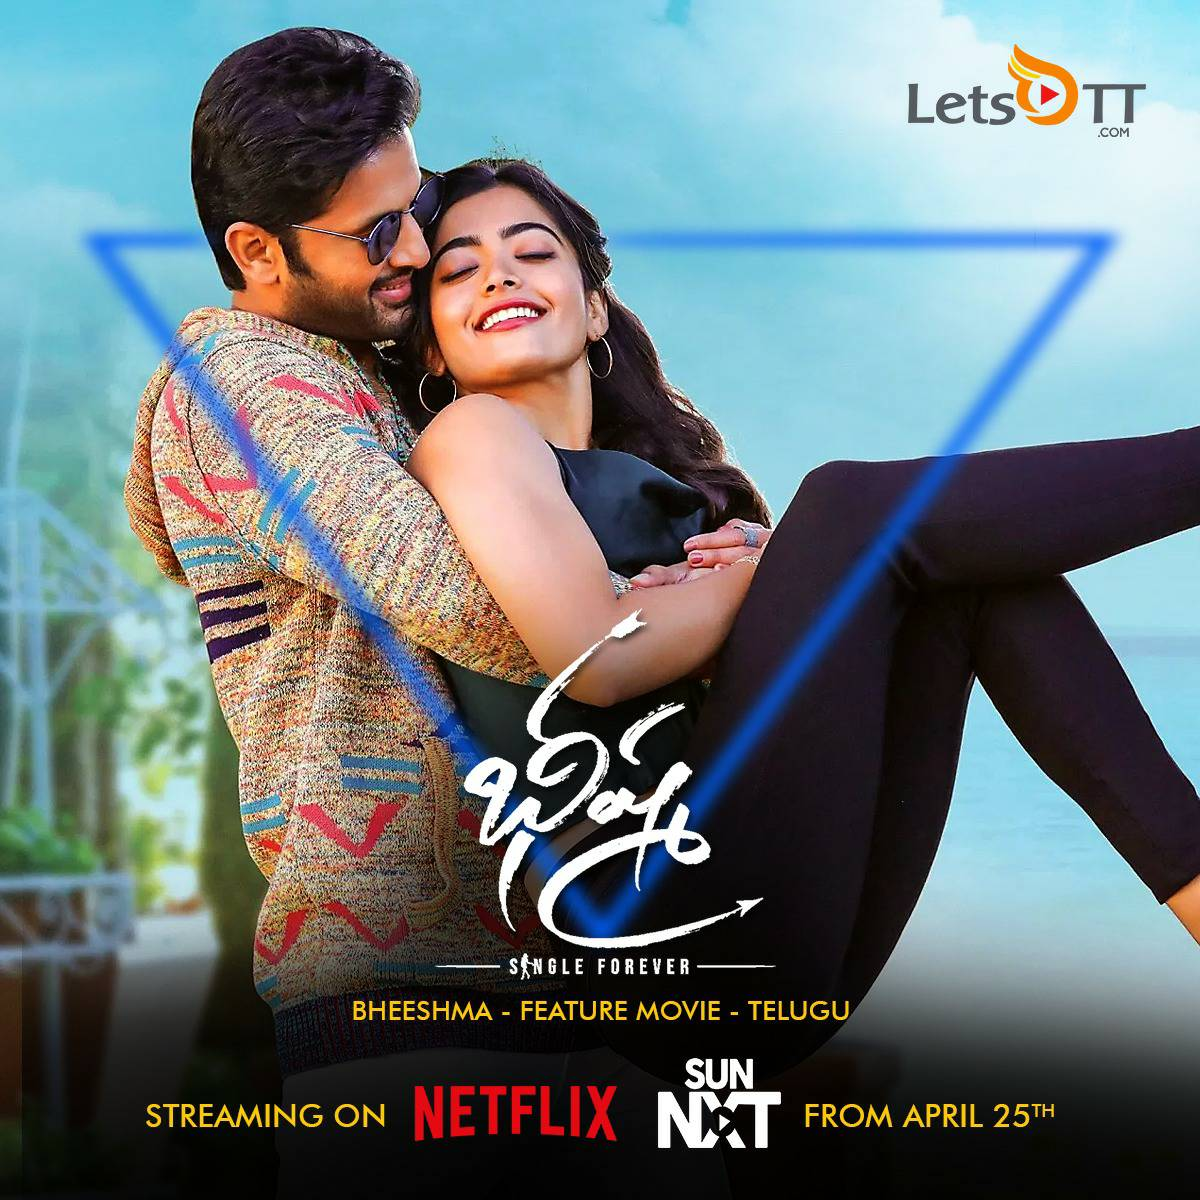 Letsott Global On Twitter 𝑩𝒉𝒆𝒆𝒔𝒉𝒎𝒂 2020 𝑵𝒆𝒕𝒇𝒍𝒊𝒙 𝑺𝒖𝒏𝑵𝒙𝒕 𝑨𝒑𝒓𝒊𝒍 25𝒕𝒉 Actor Nithiin Iamrashmika Venkykudumula Follow Letsott For All Live Updates And Reviews From Your Favourite Streaming Platforms Https T Co